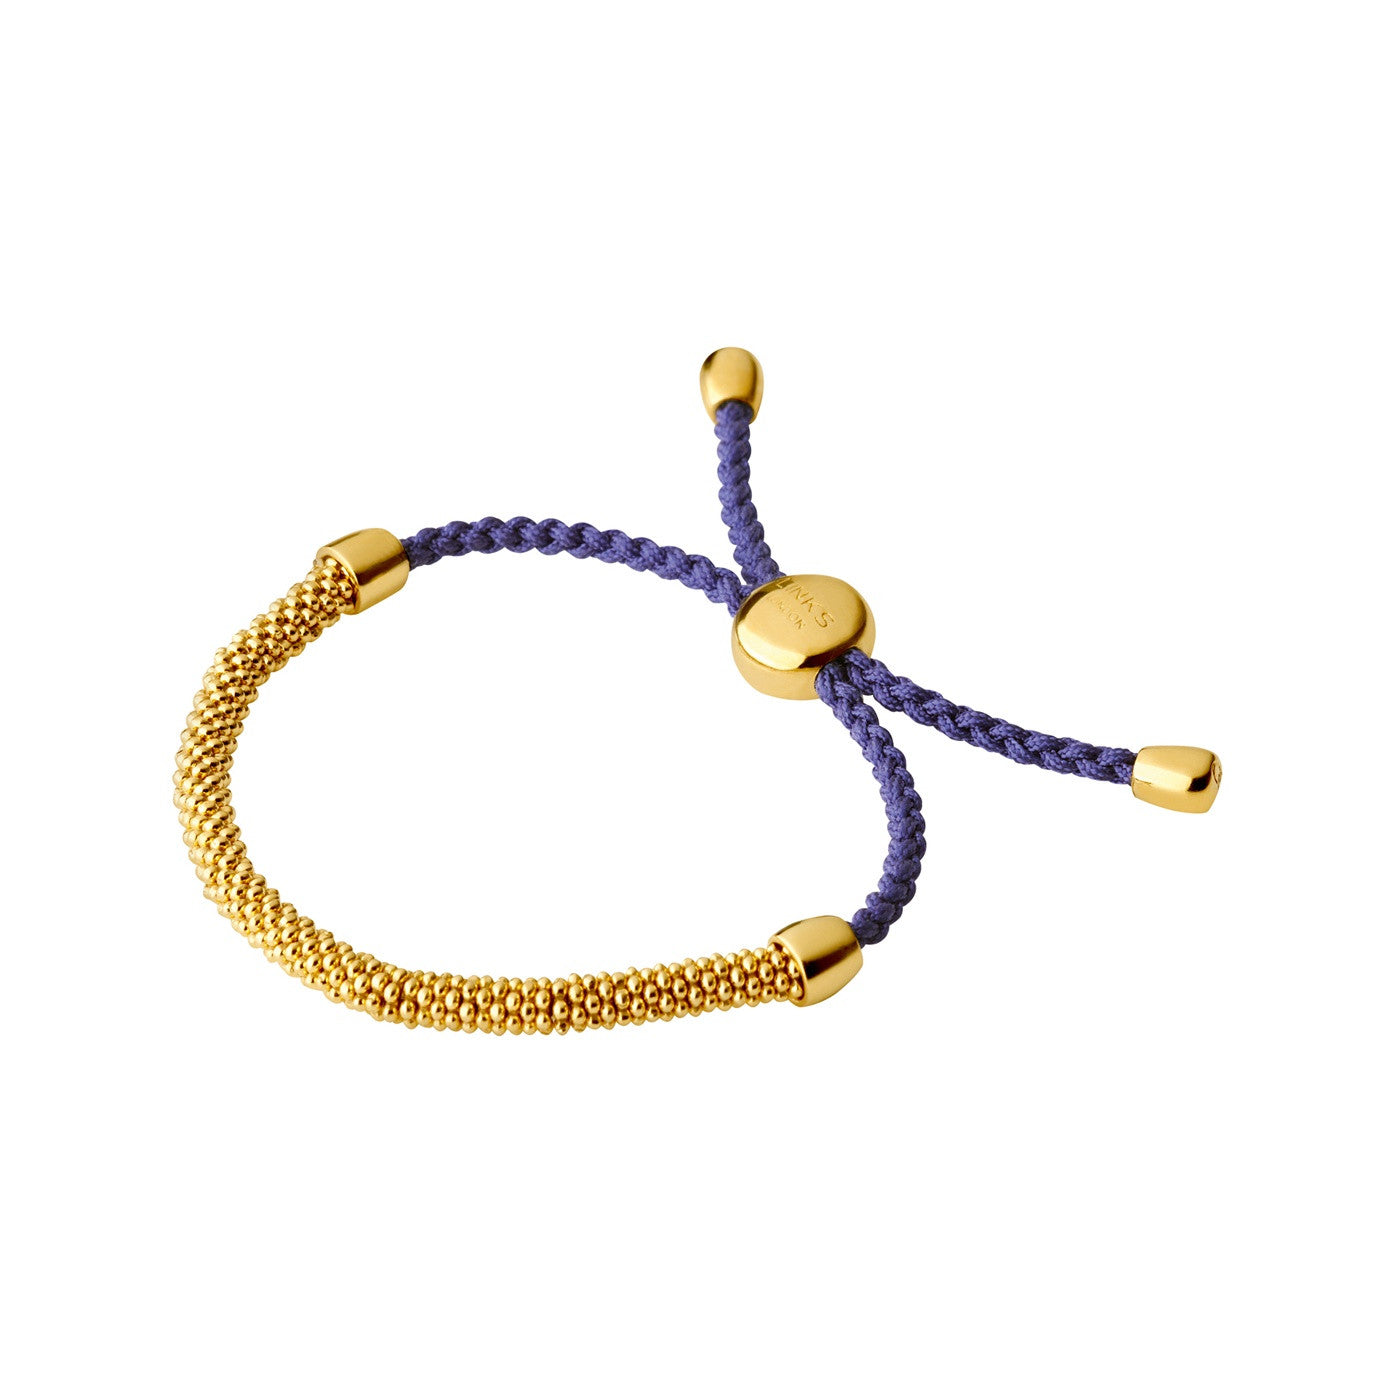 Links of London Effervescence XS 18K Yellow Gold Vermeil & Purple Cord Bracelet - 5010.3148